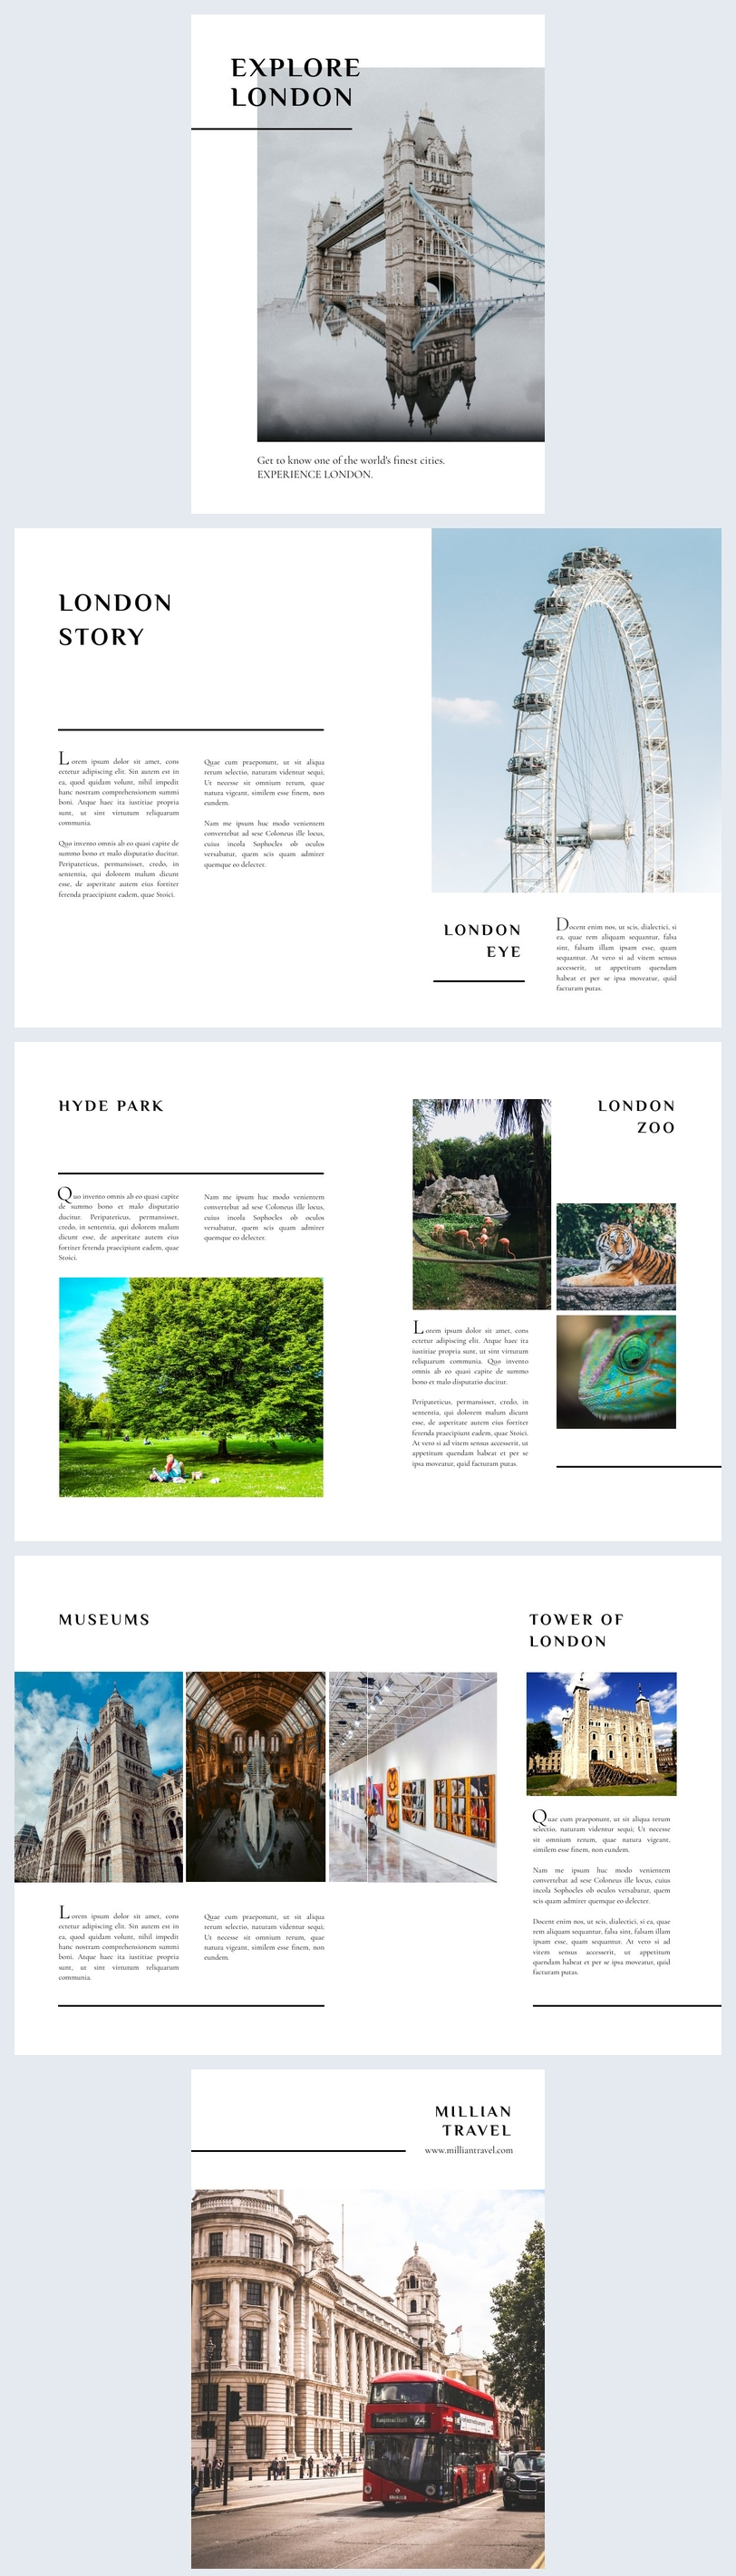 8 Page Booklet Design Inspiration